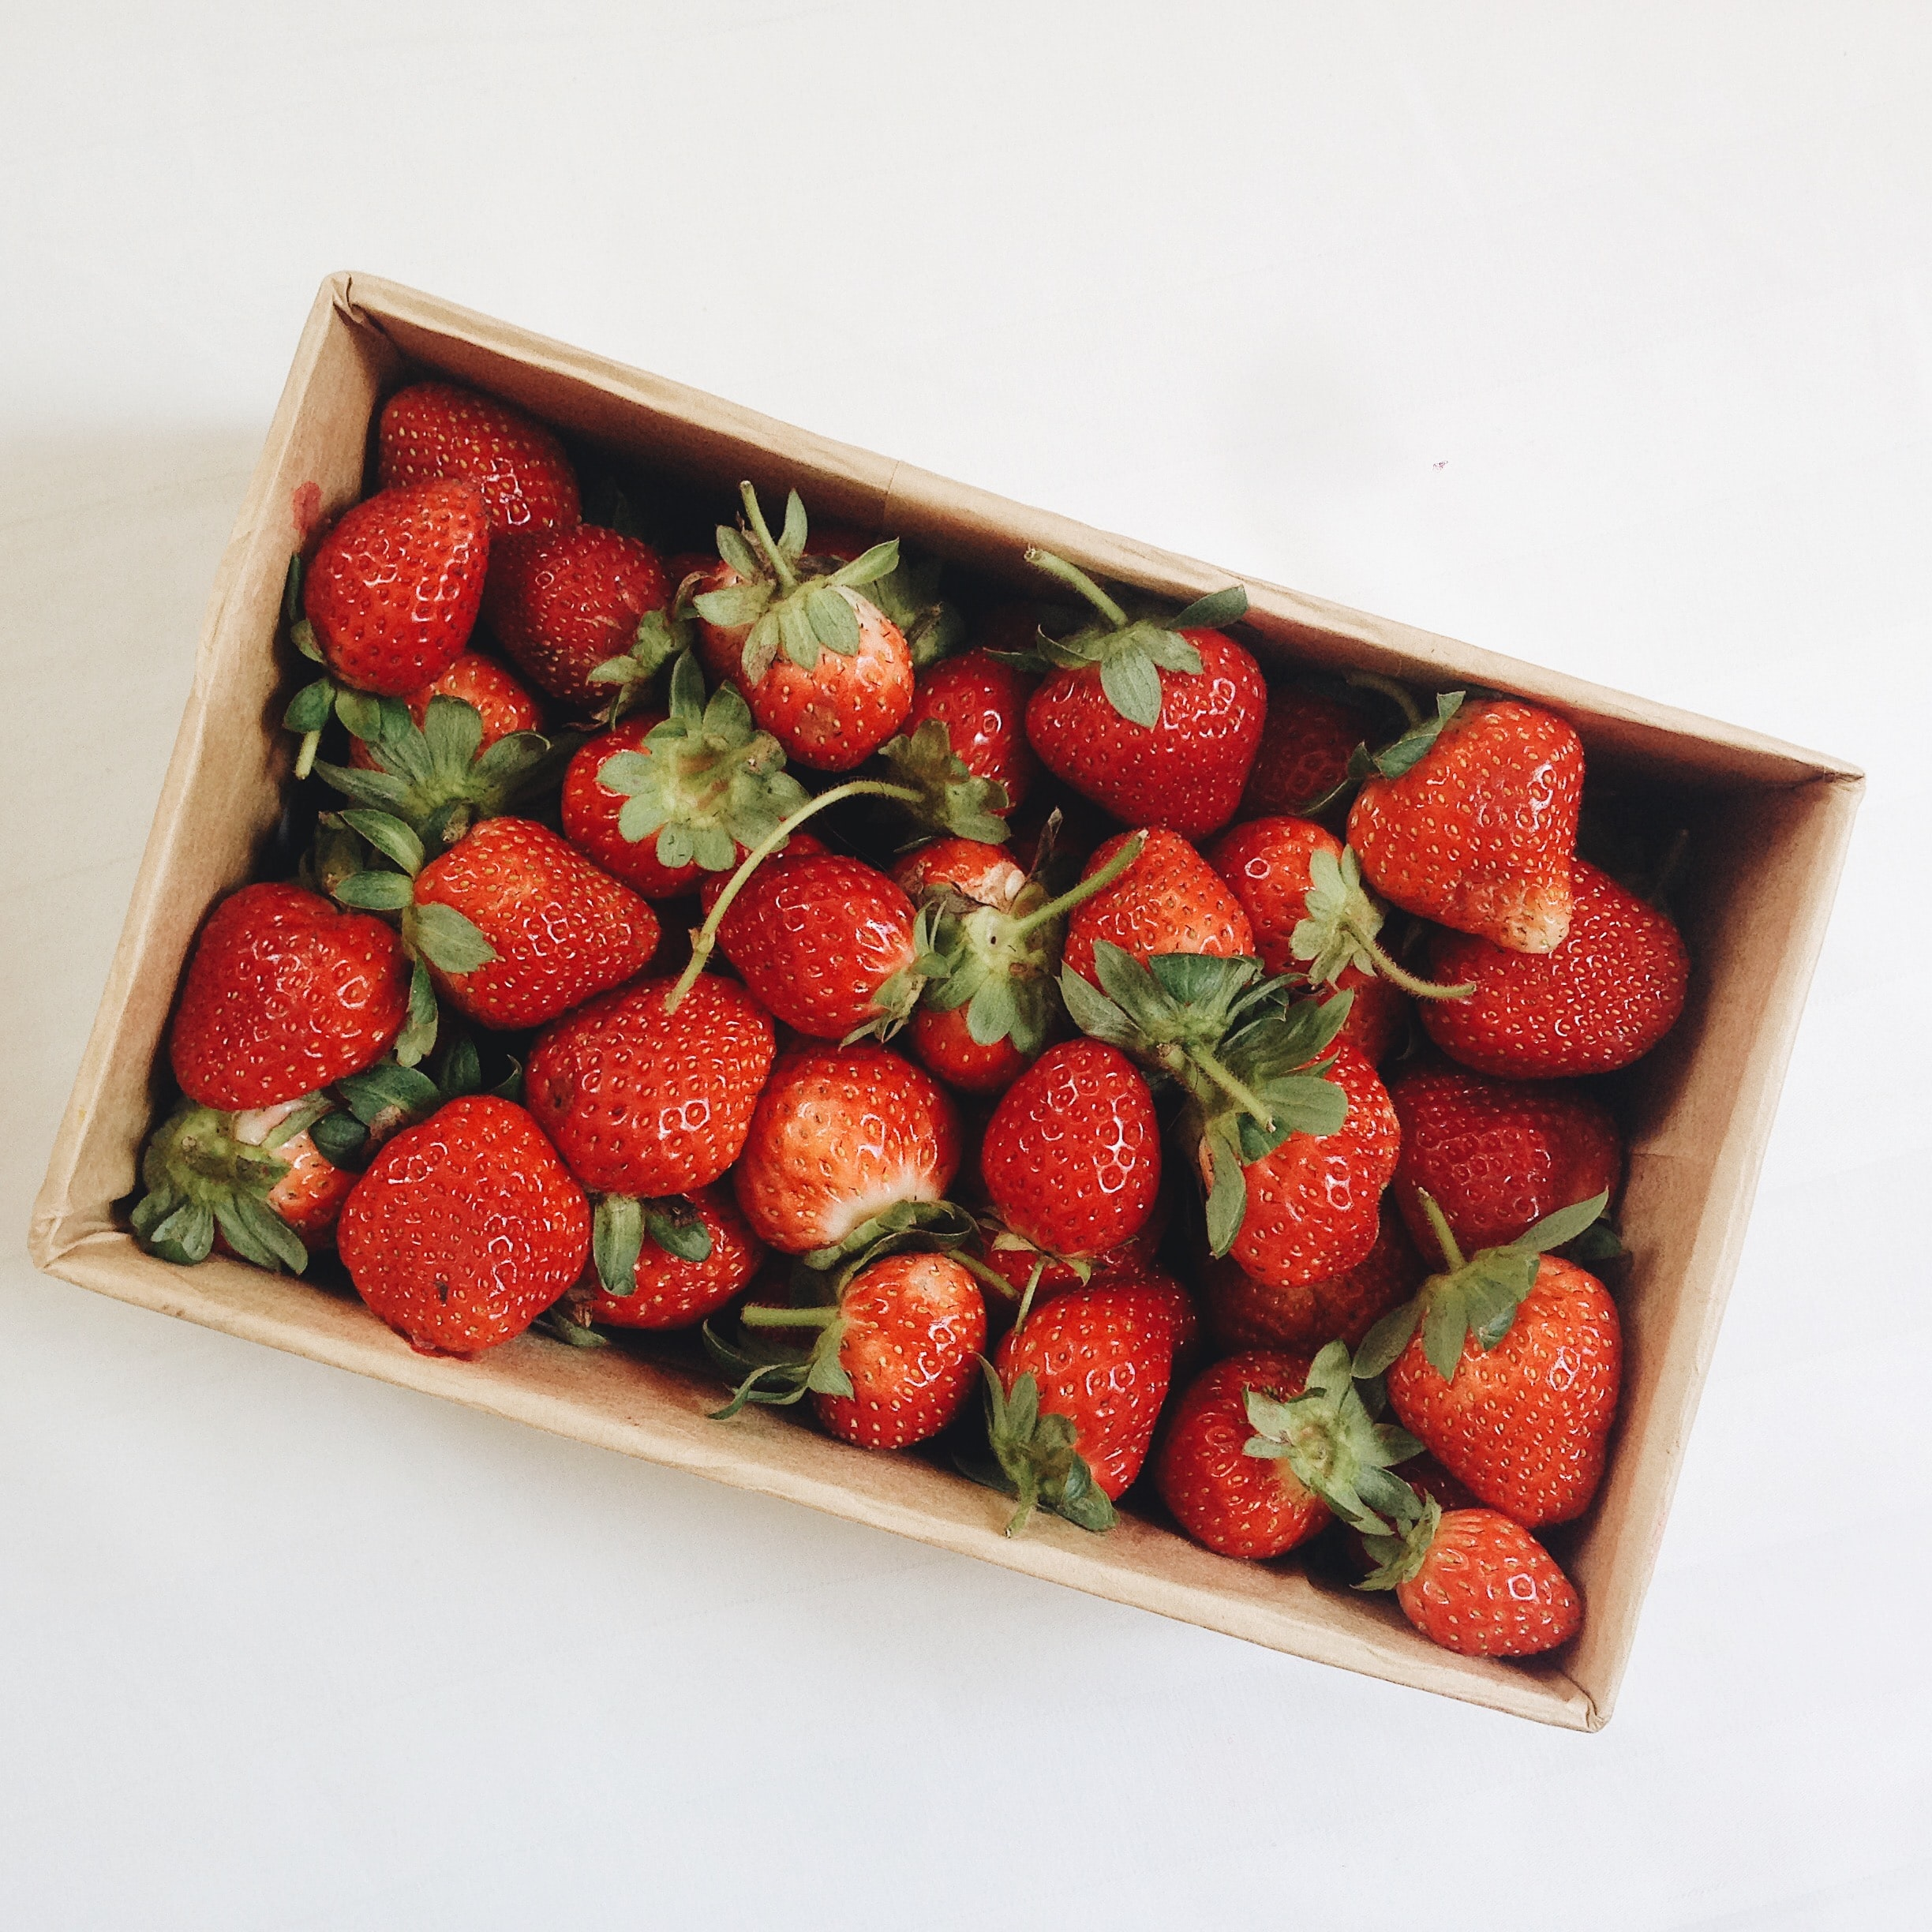 101313 download wallpaper Food, Strawberry, Box, Fruits, Berries screensavers and pictures for free